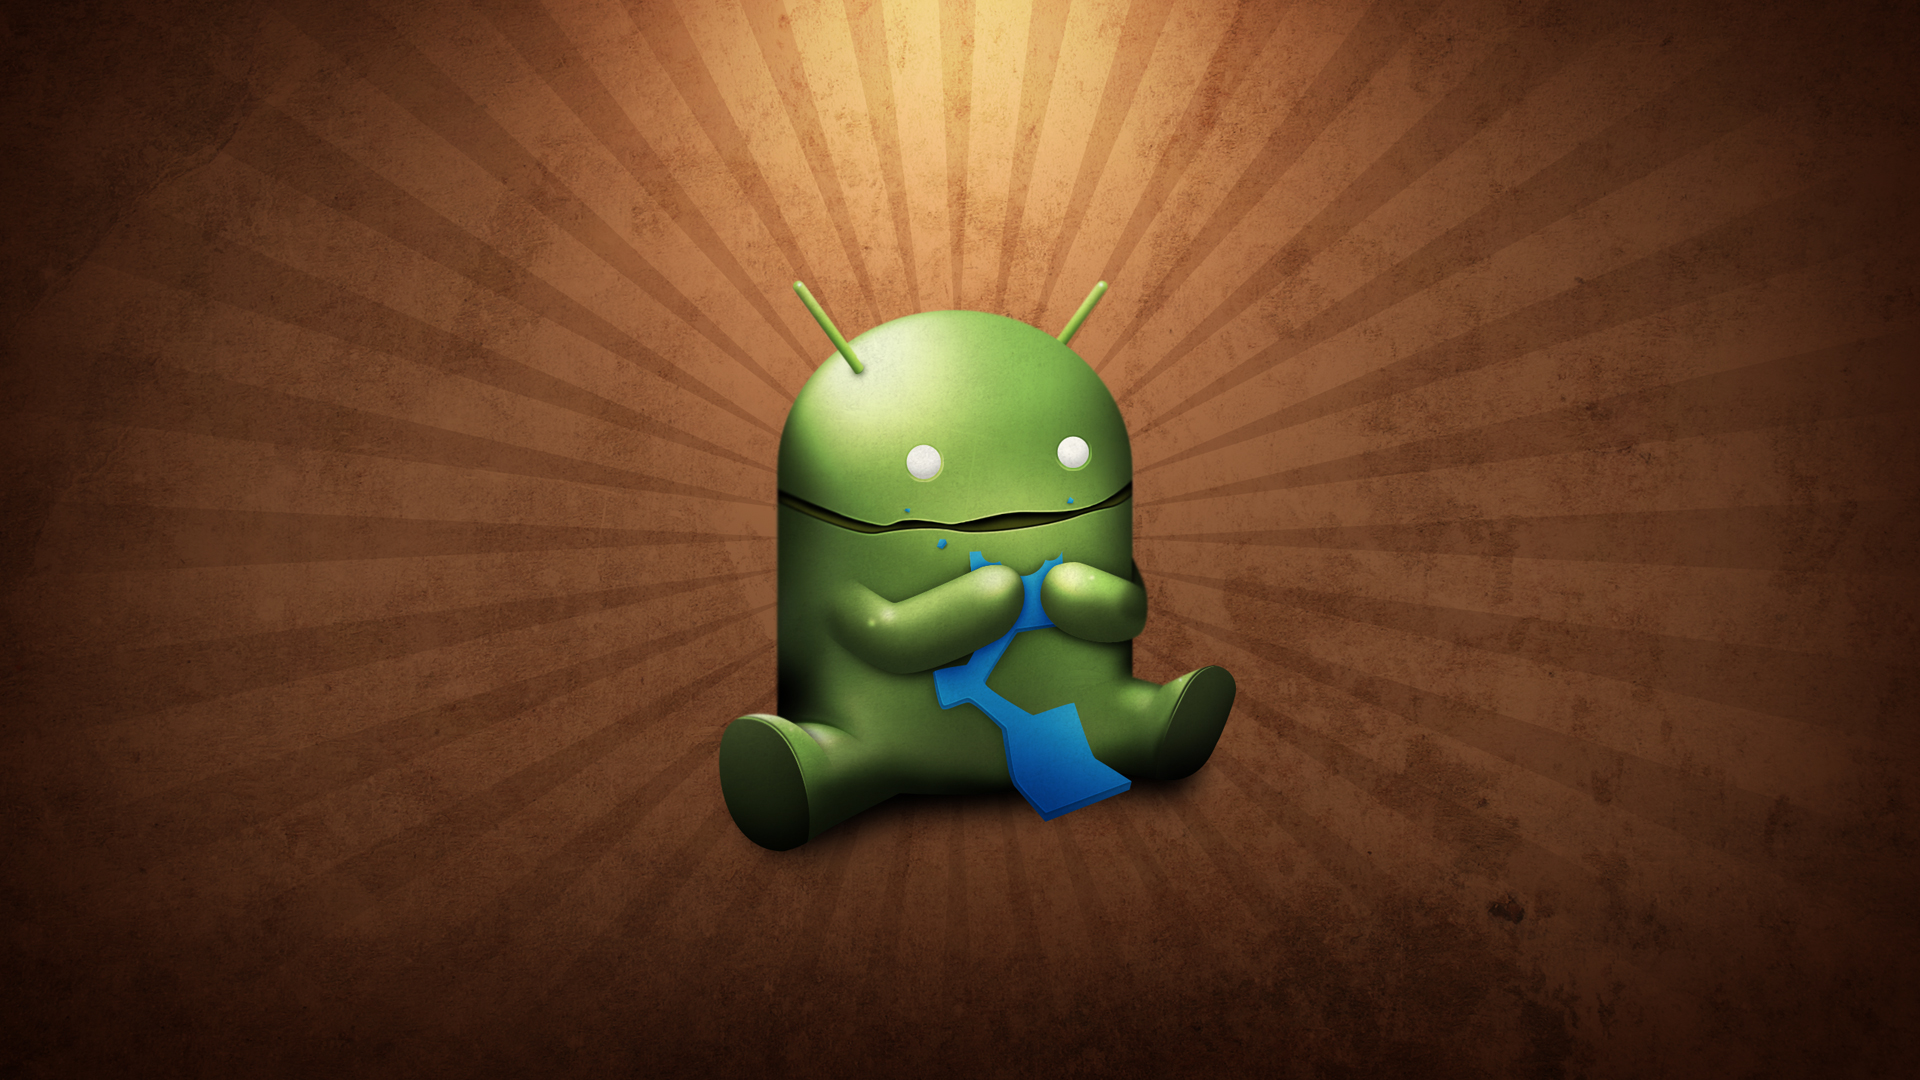 wallpapers for android 4 1024x576 1920x1080